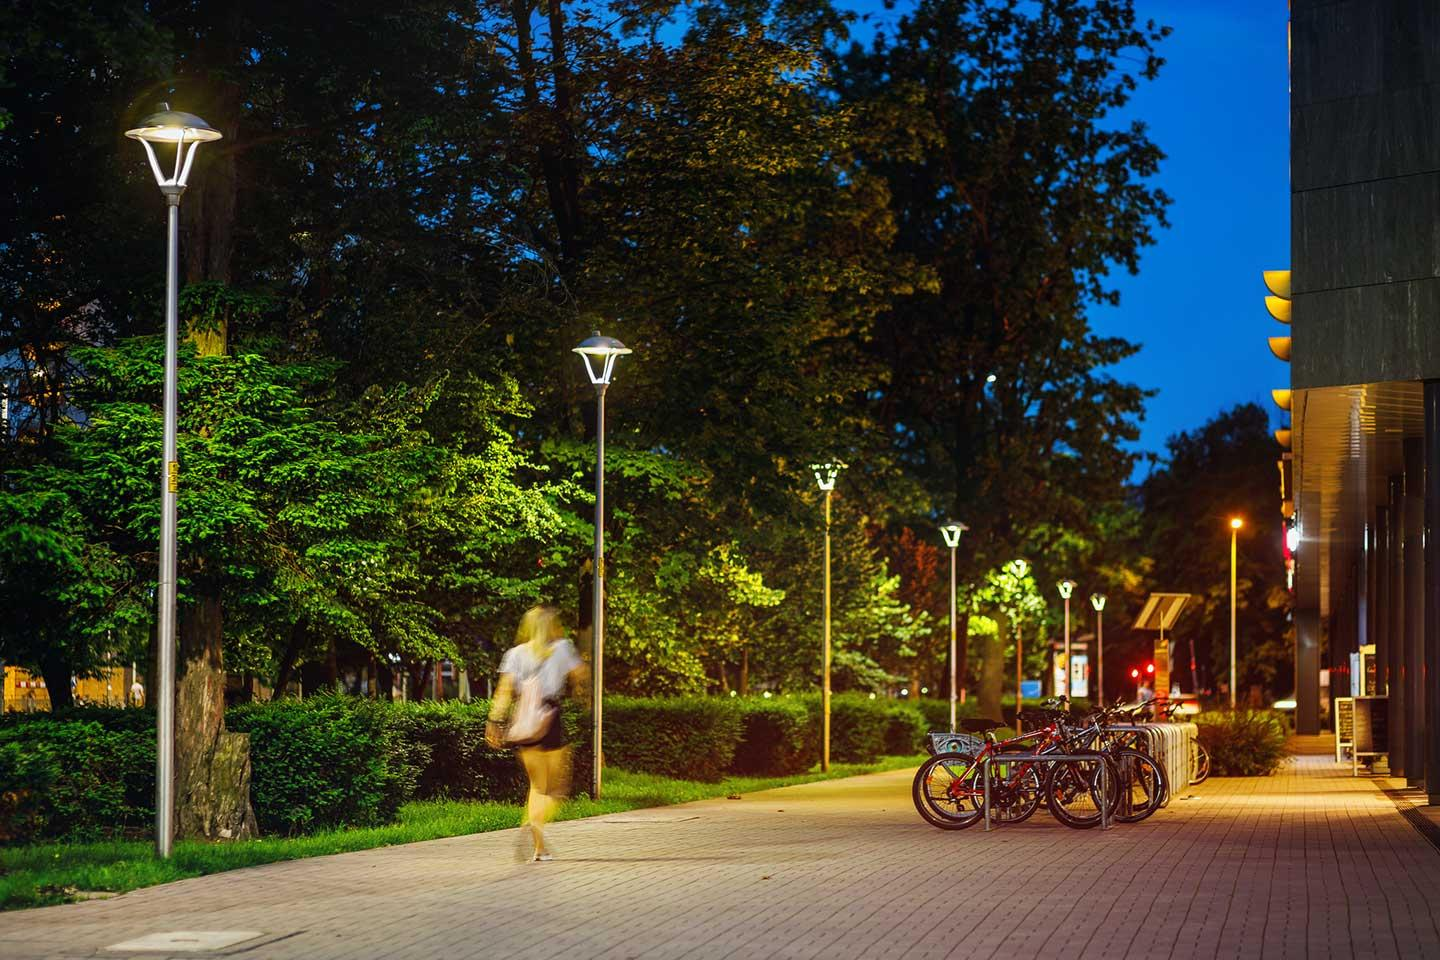 ISLA LED lights the streets adjoining Powstańców Śląskich, creating a pleasant and sustainable solution